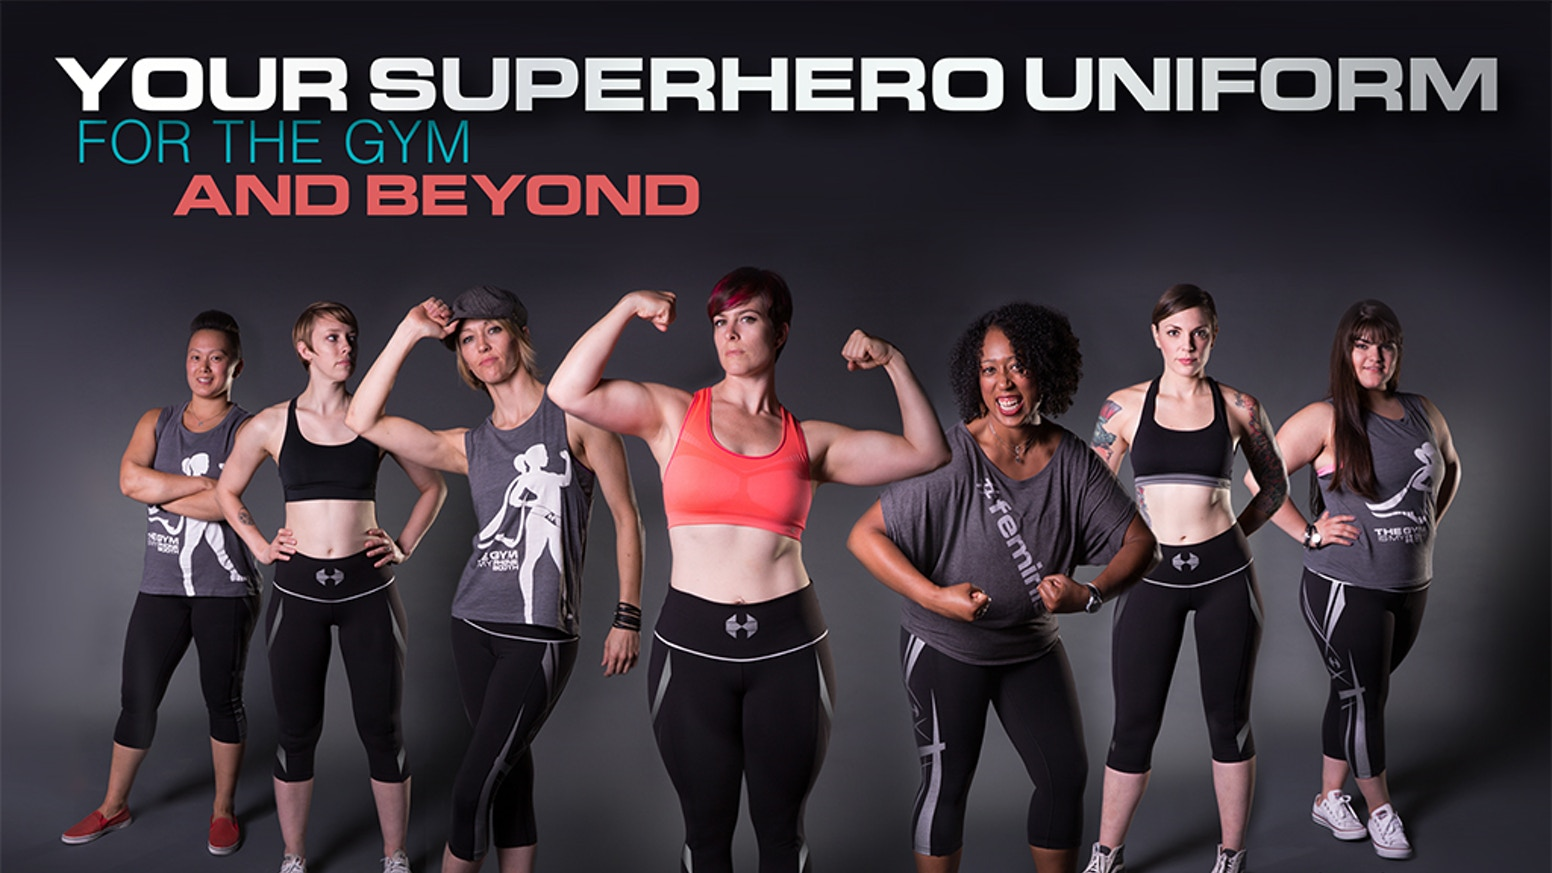 Designed to make you feel supported and confident in the gym and beyond. For women sizes XS-3XL. Unleash your superpower!